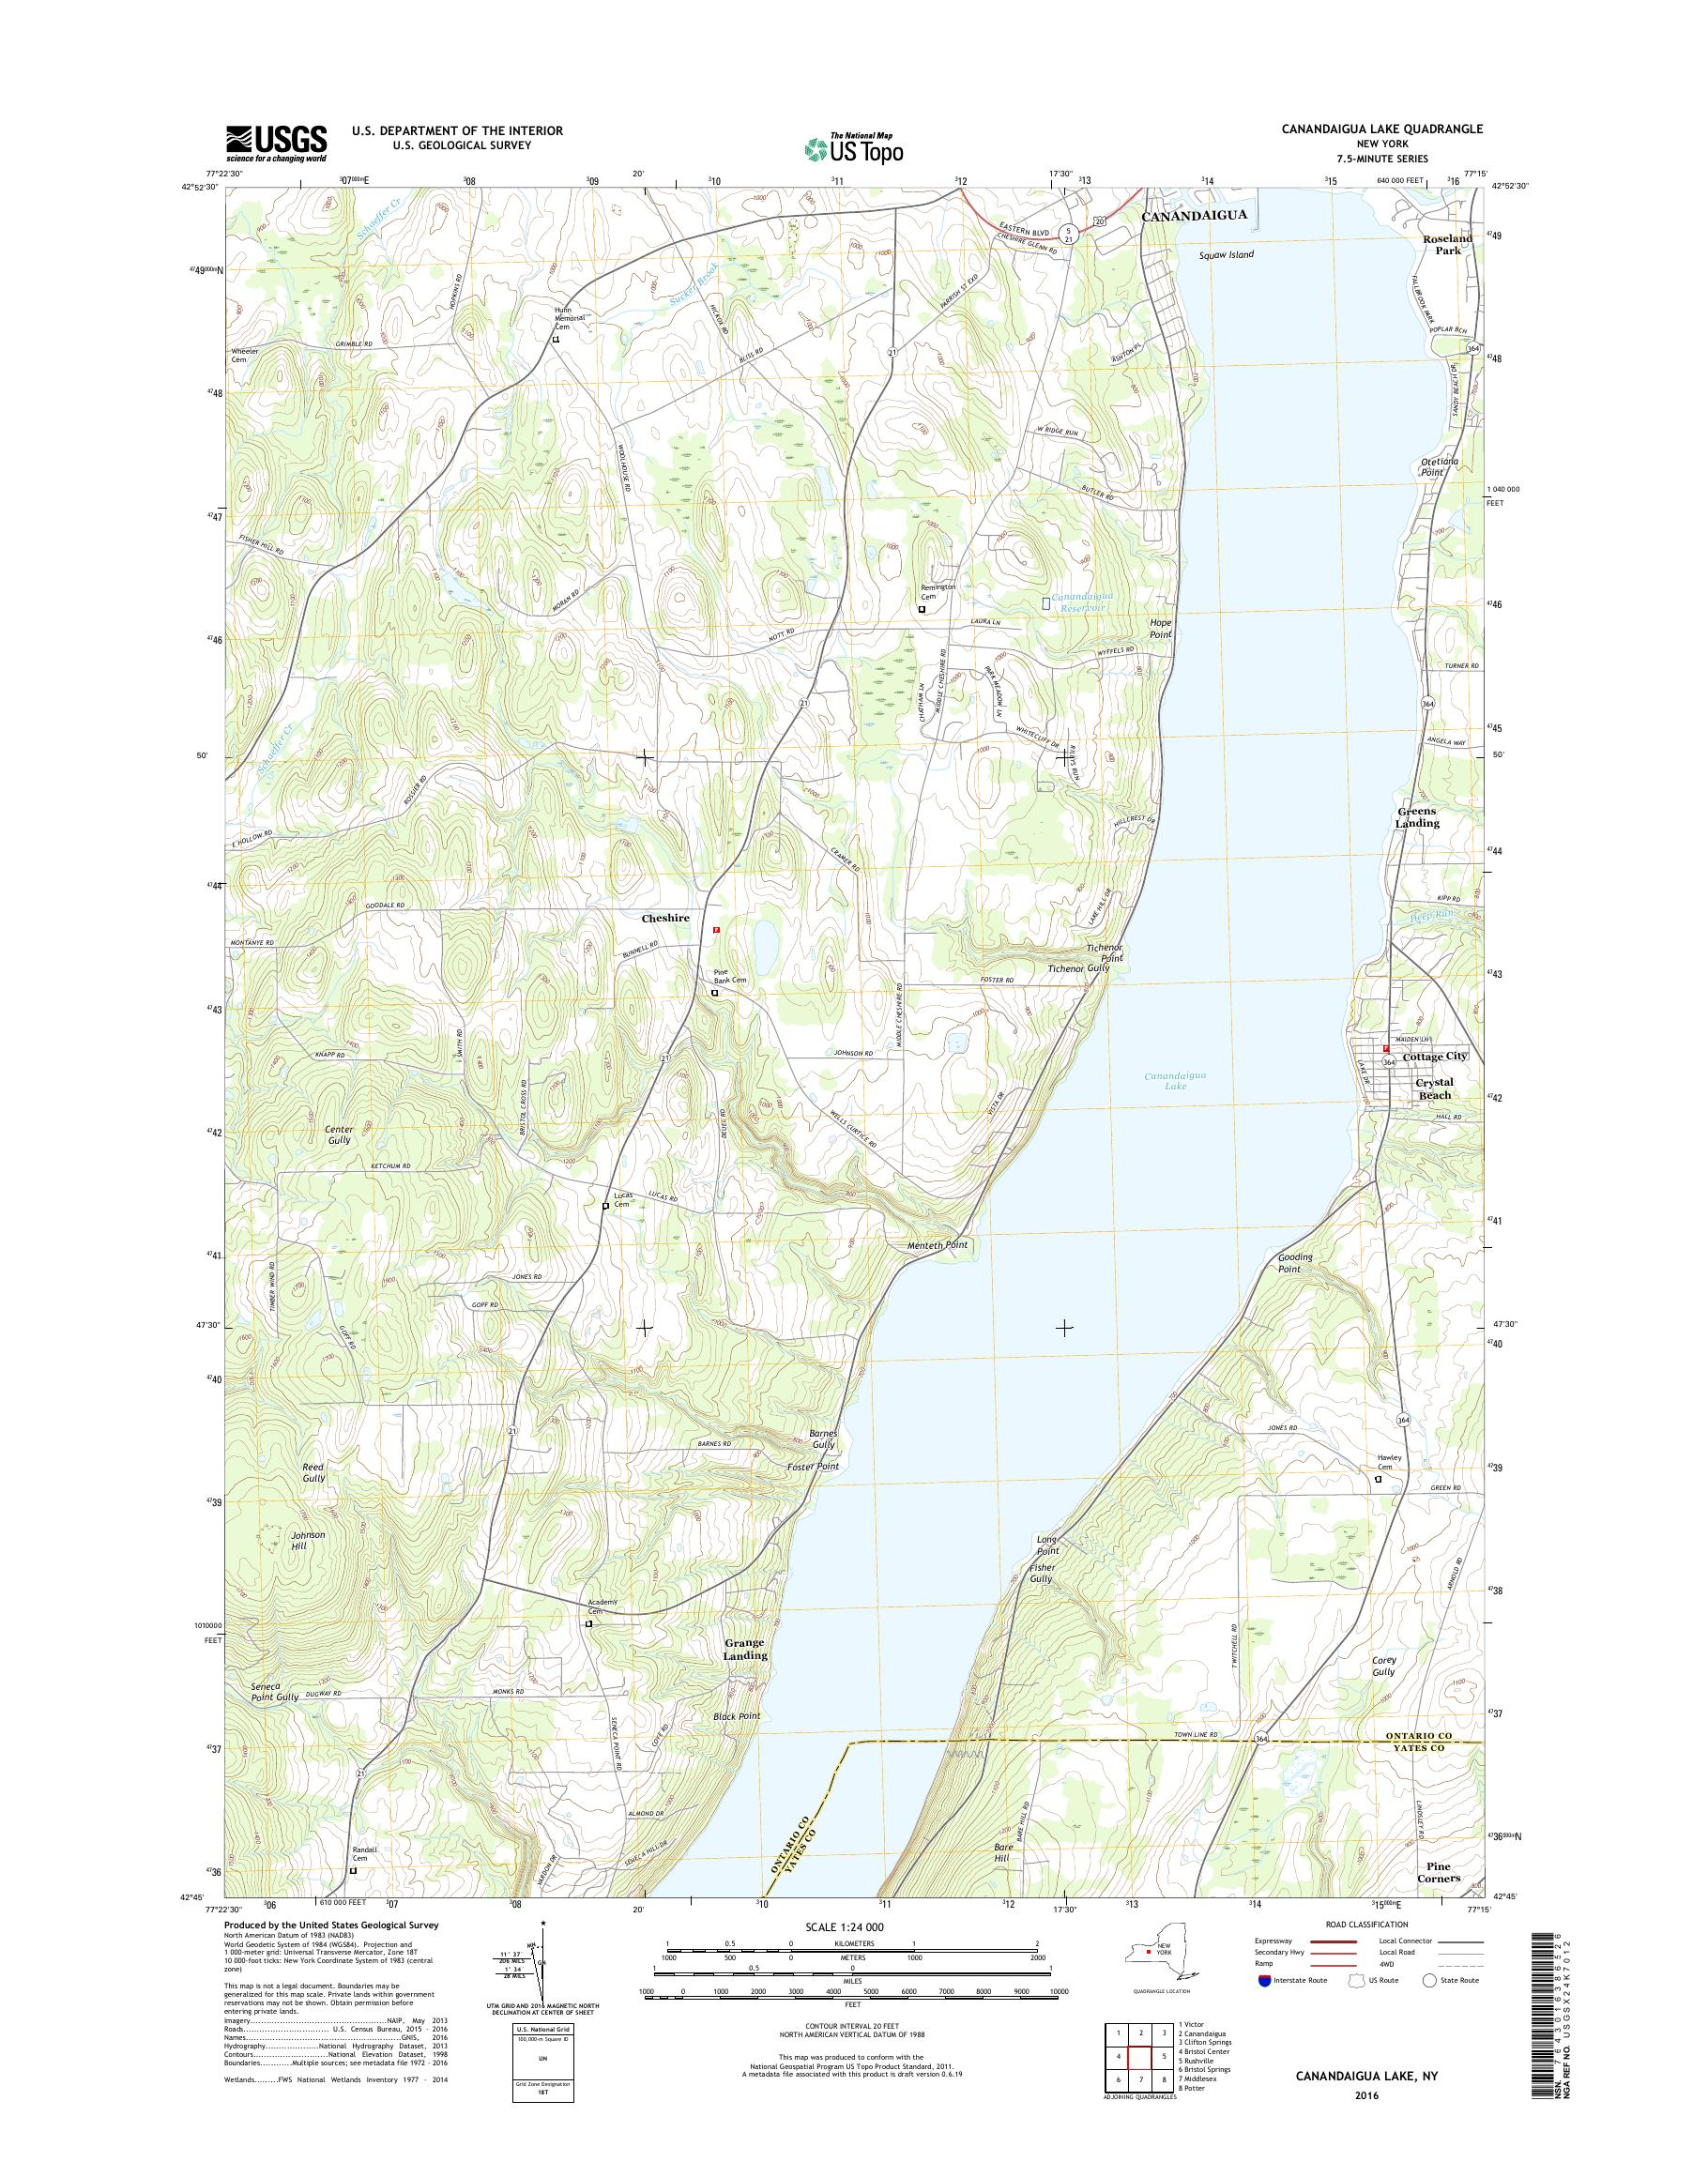 MyTopo Canandaigua Lake, New York USGS Quad Topo Map on lake tear of the clouds map, dryden lake map, otisco lake map, lake harris campground map, warsaw lake map, hemlock lake map, hammondsport map, stamford lake map, seneca lake map, new england lake map, hook mountain map, chazy lake map, brighton lake map, keuka lake map, squaw island map, genesee valley map, pittsfield lake map, fresno lake map, honeoye lake map, rockville lake map,